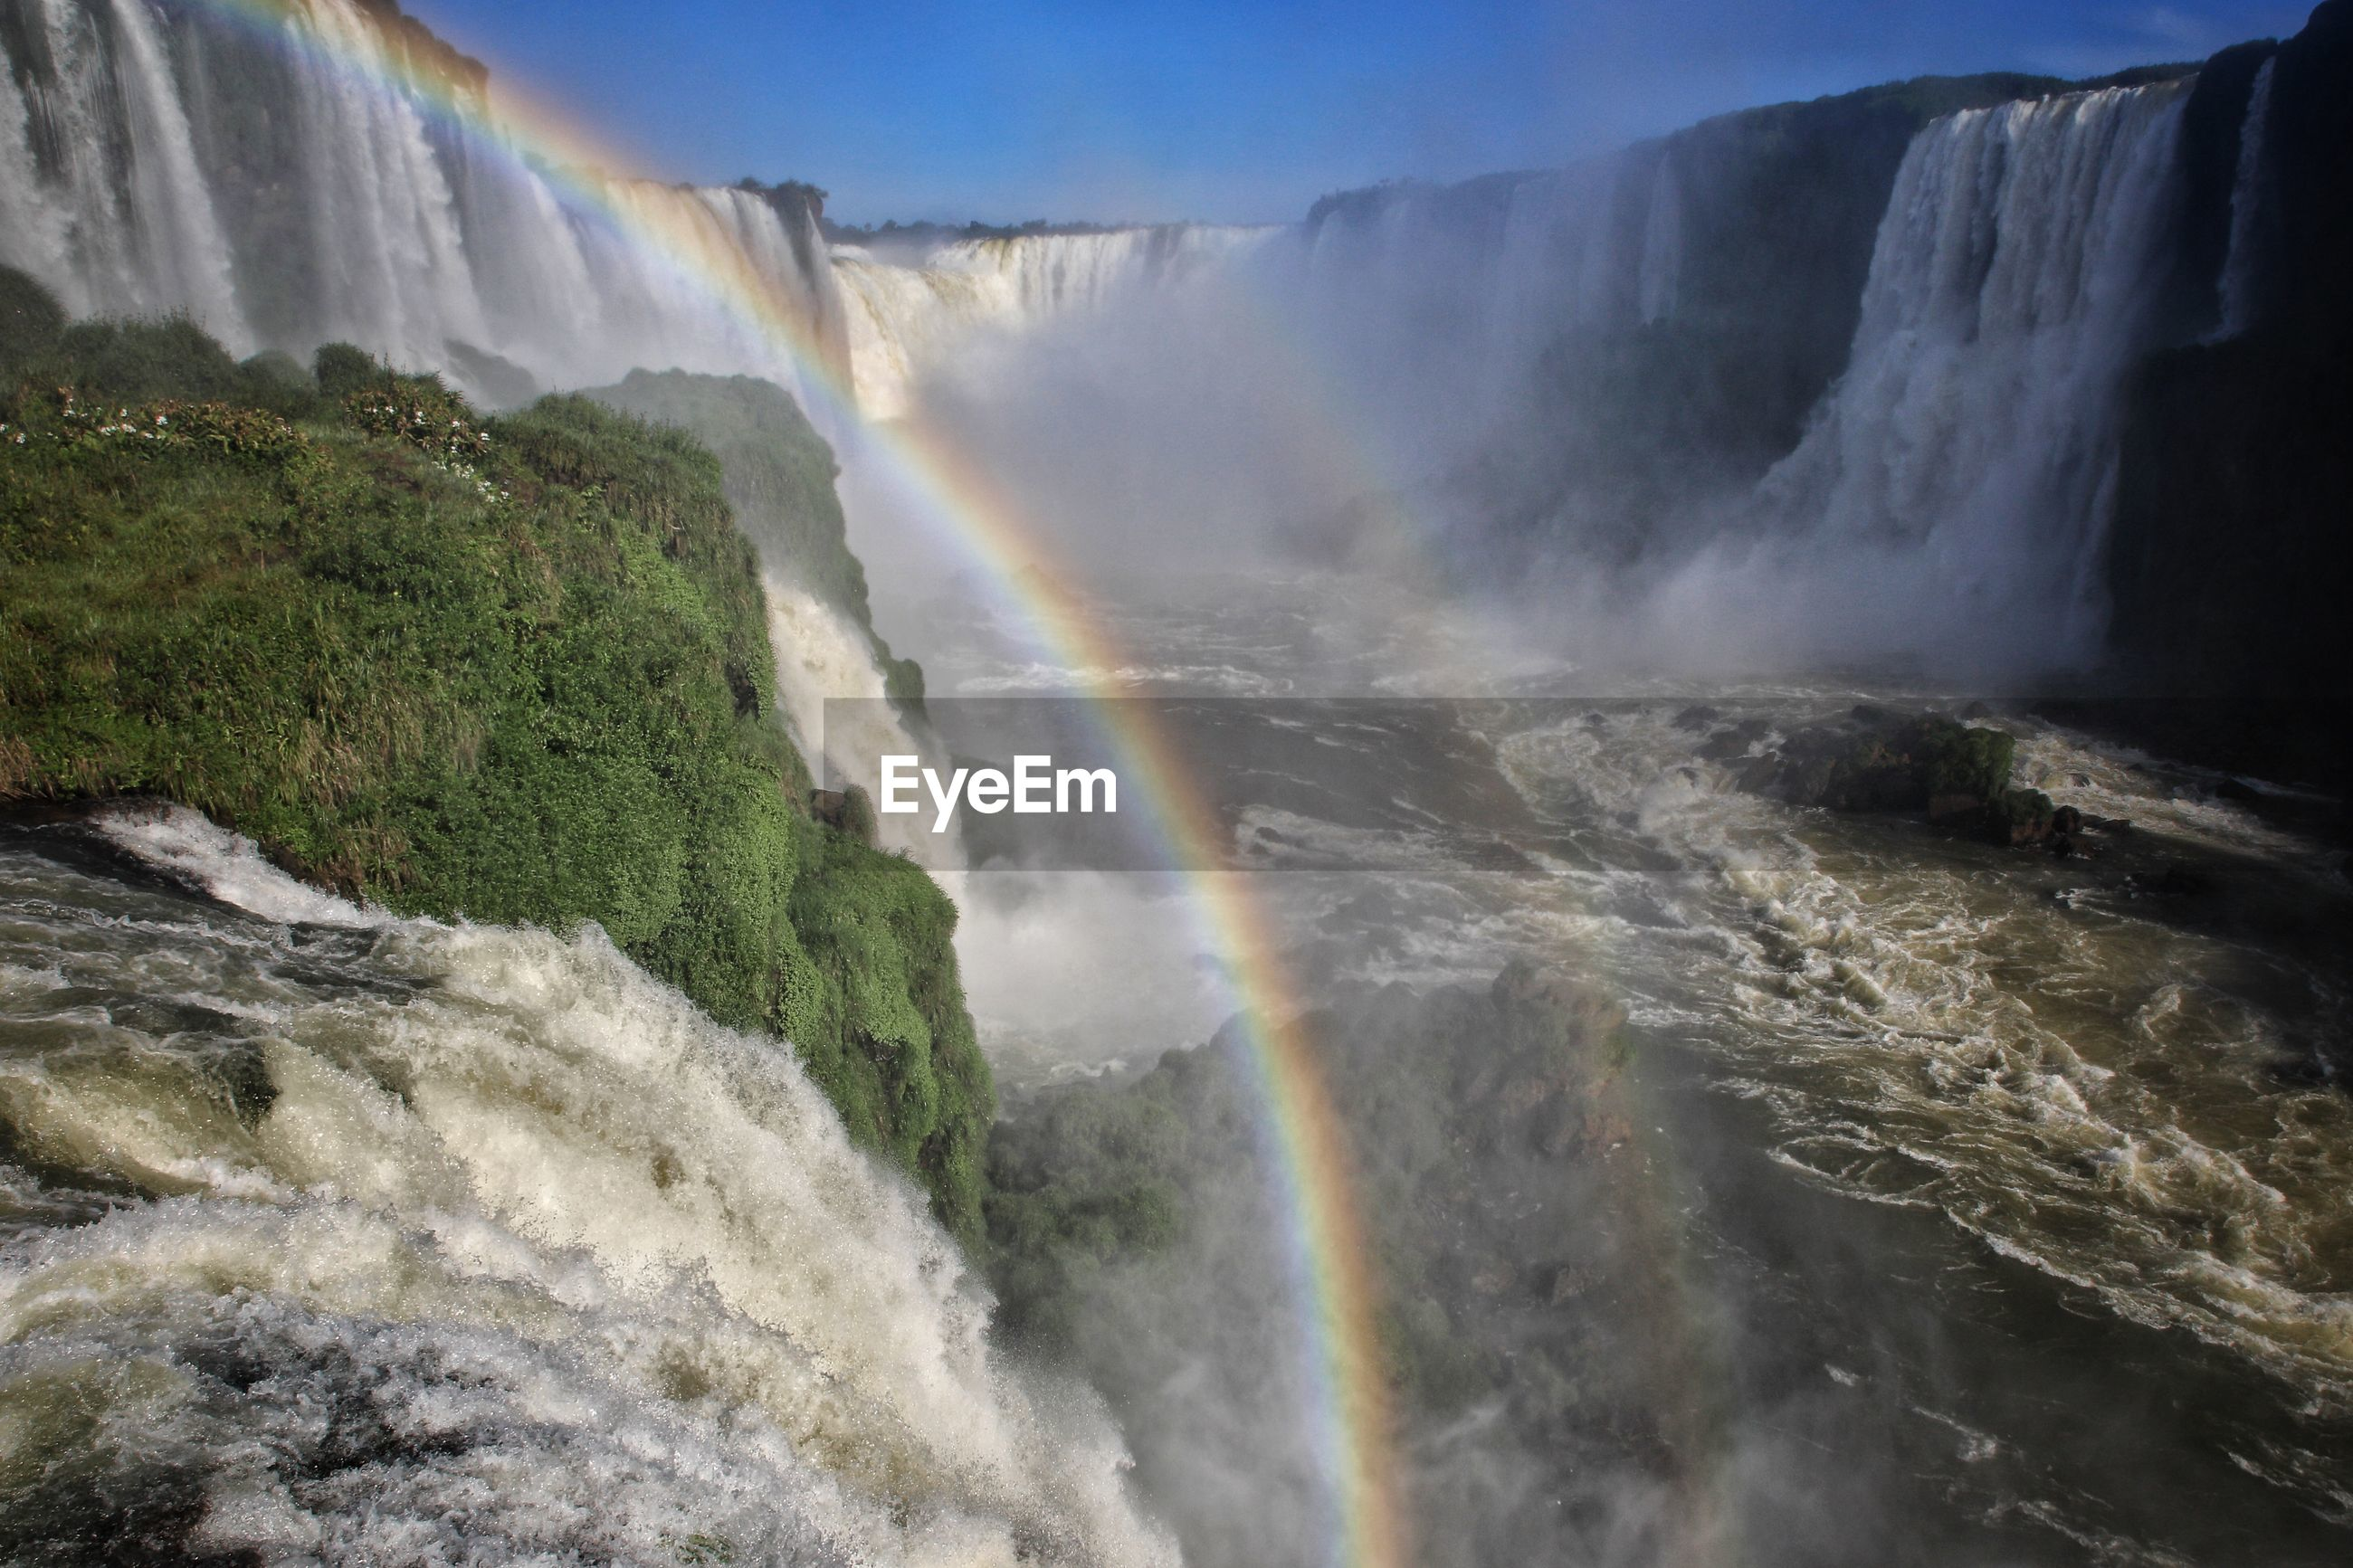 SCENIC VIEW OF WATERFALL AGAINST RAINBOW